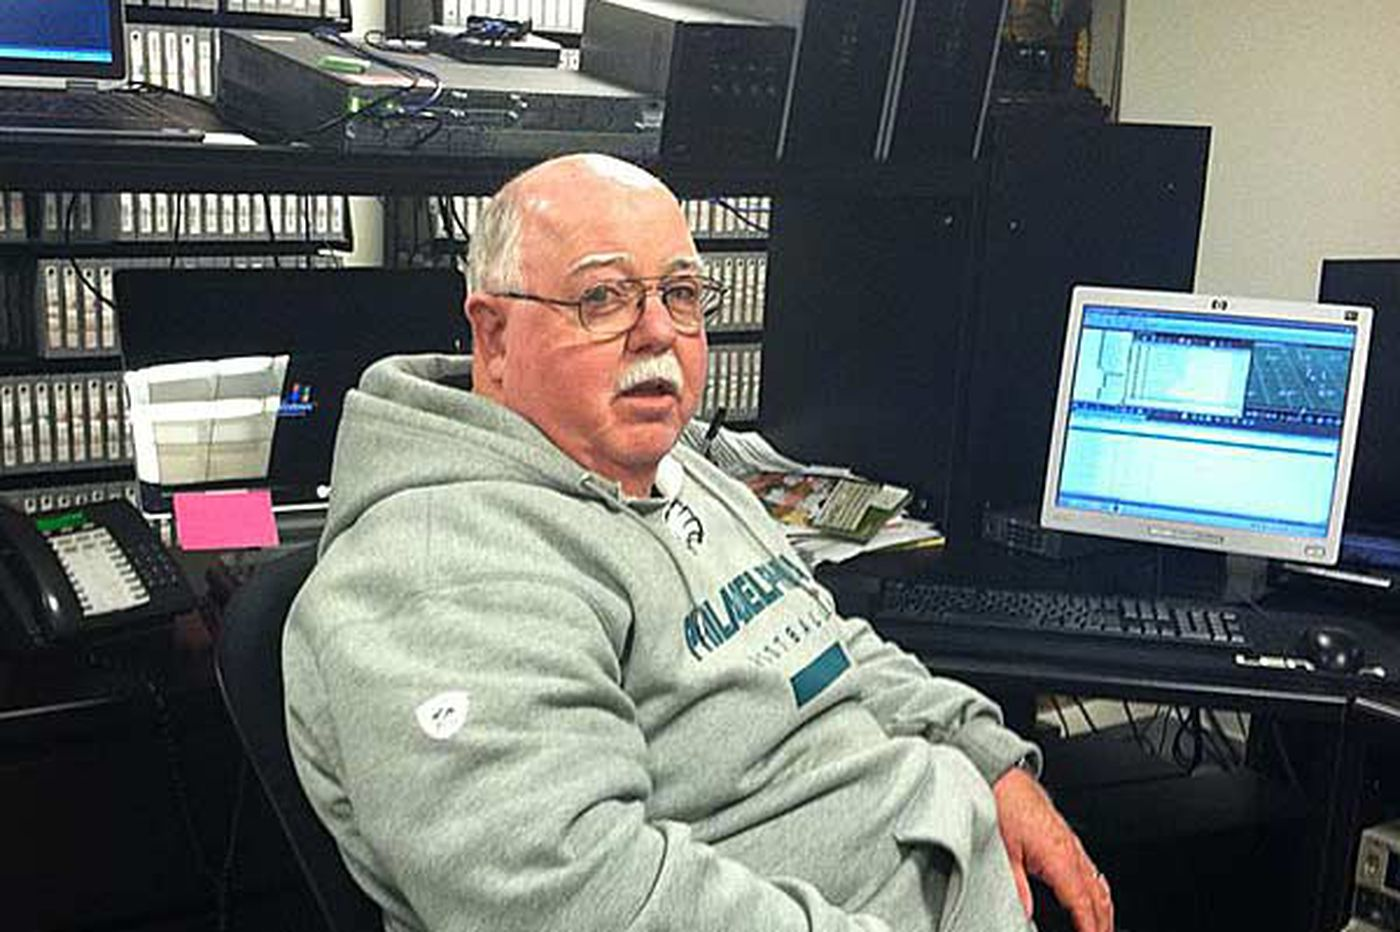 Eagles video director to retire after 37 years